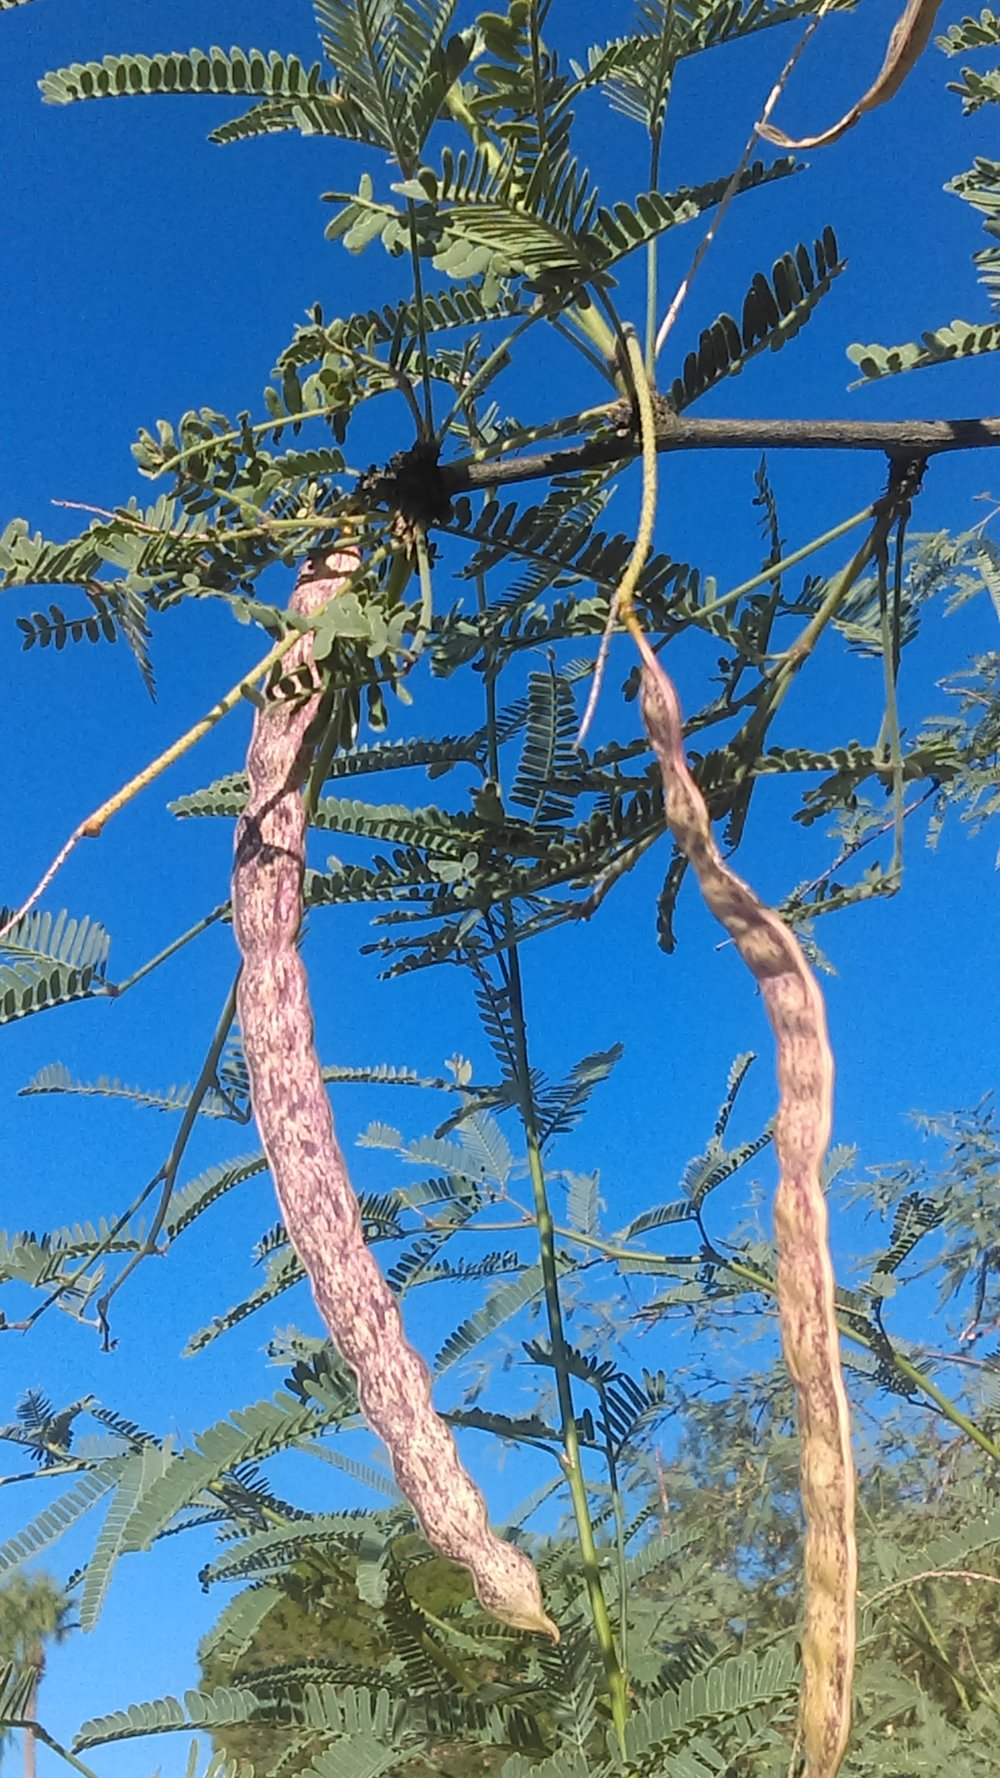 Honey Mesquite pods are a delicious desert superfood